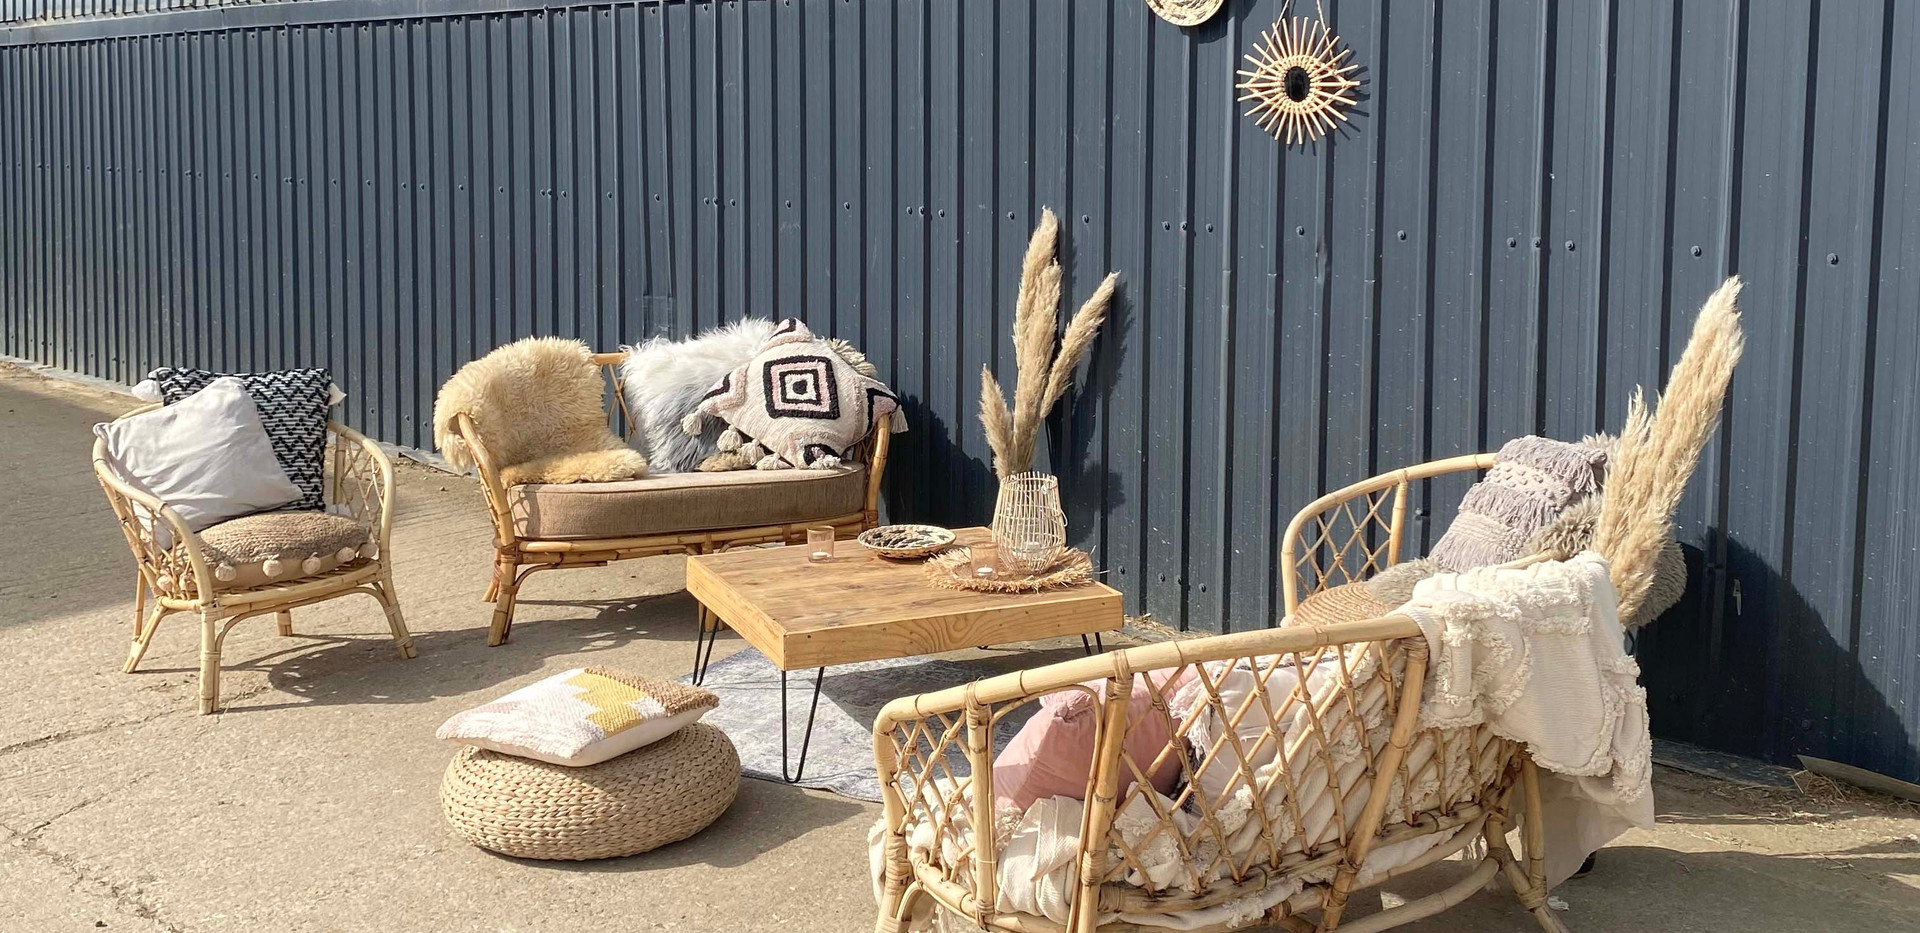 Event hire cane sofa chill out area .jpg